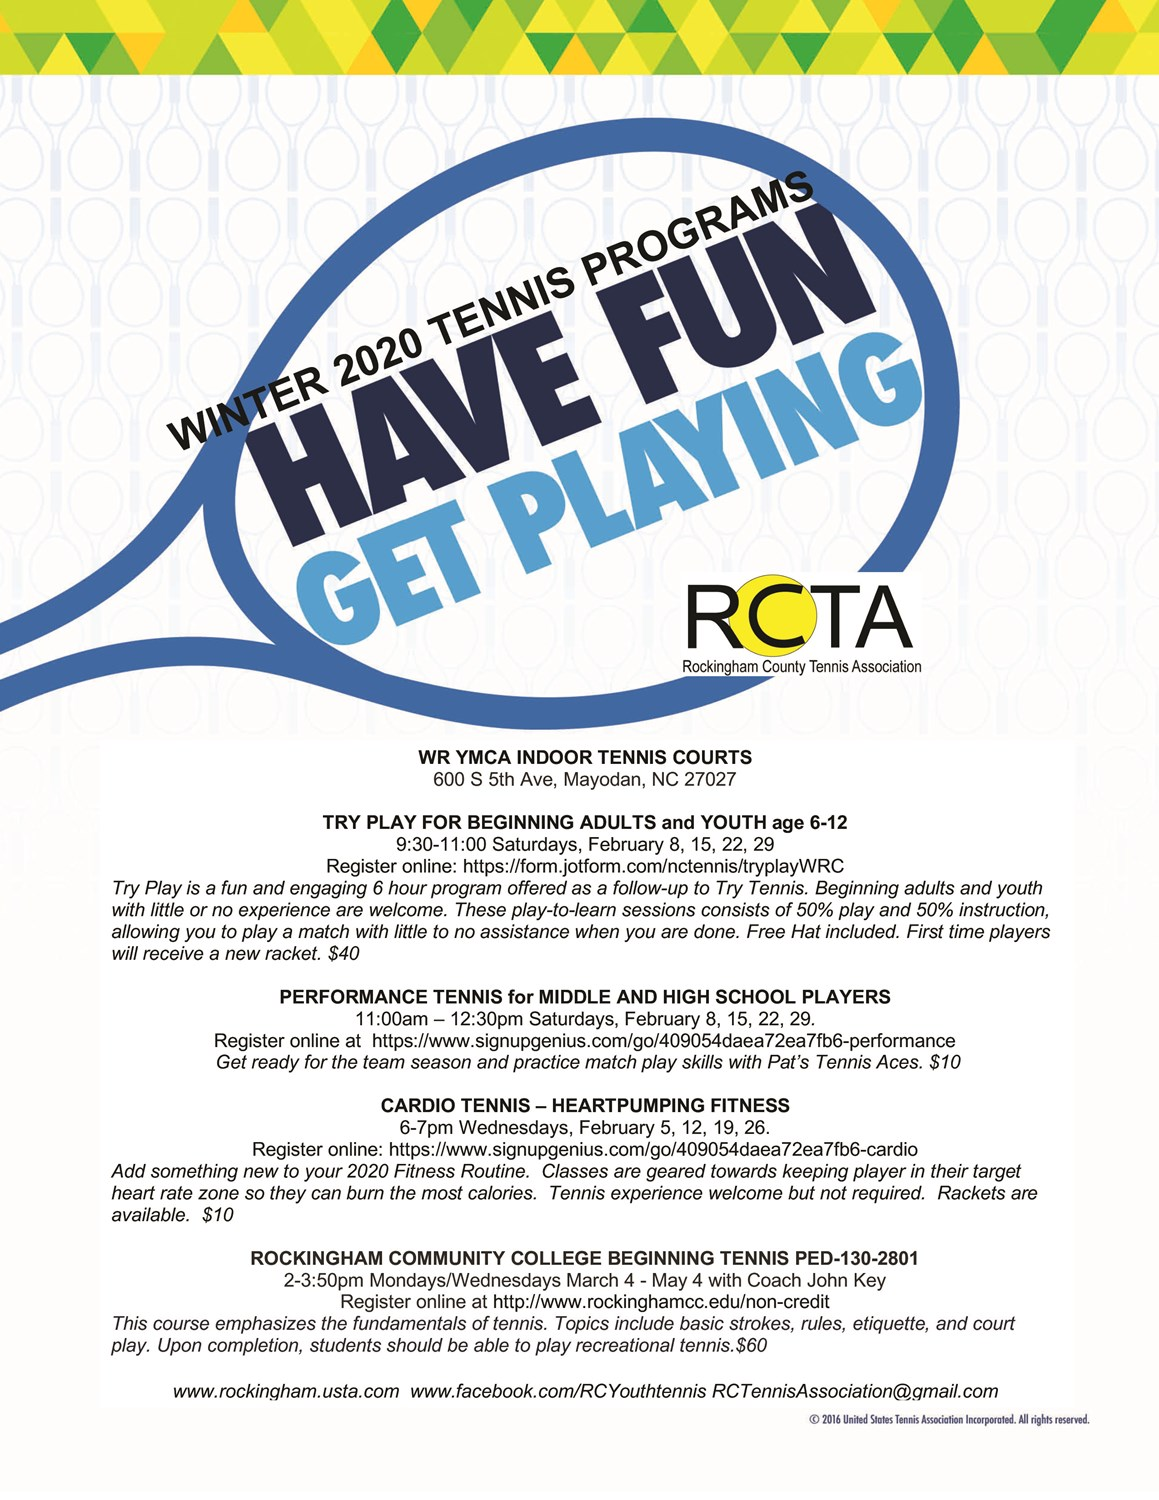 RC_Tennis_February_2020_Program_flyer-page-0